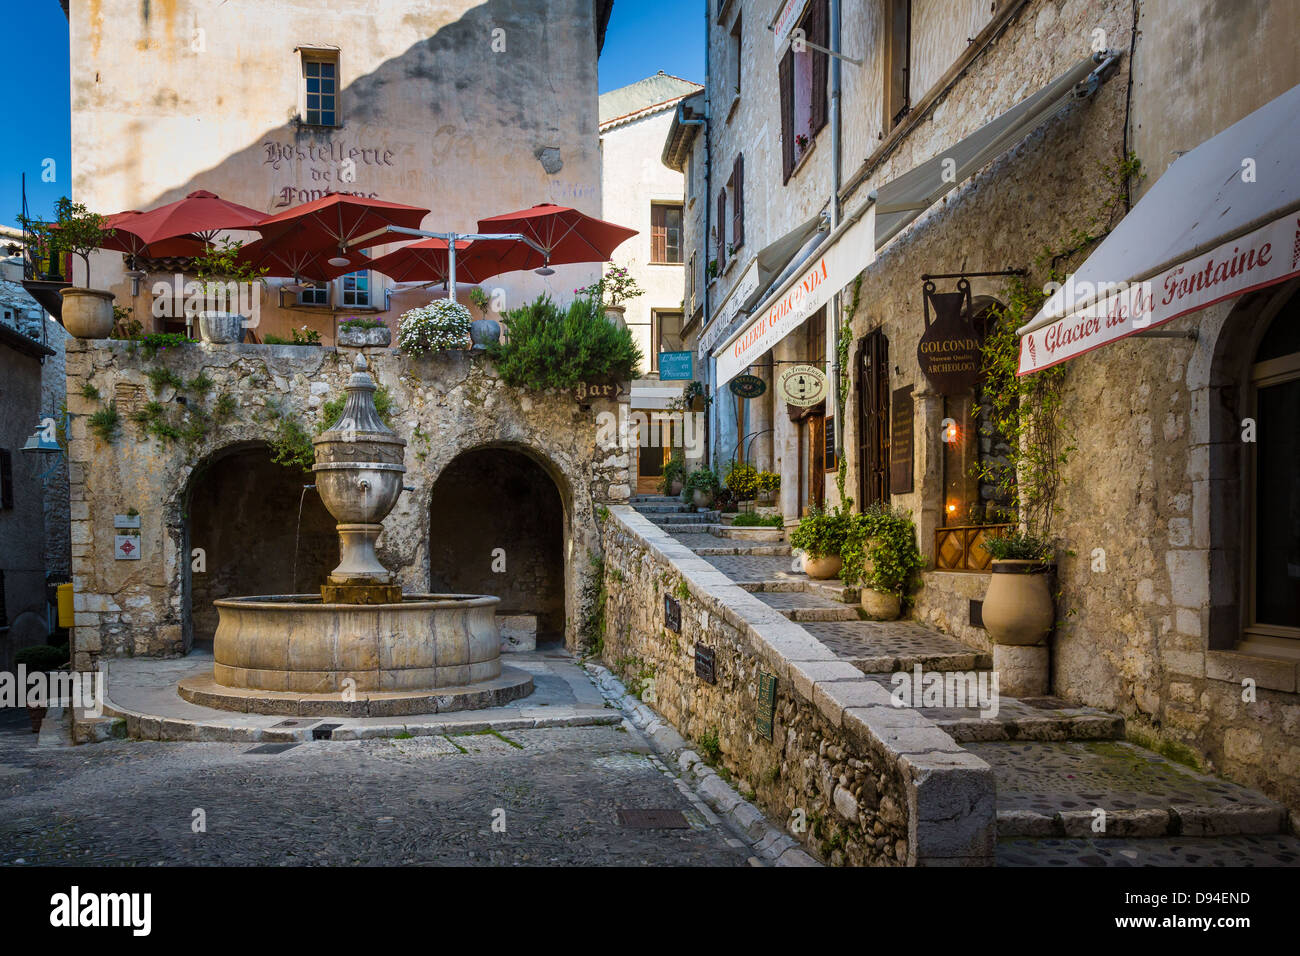 Town square on Rue Grand in Saint-Paul-de-Vence - Stock Image